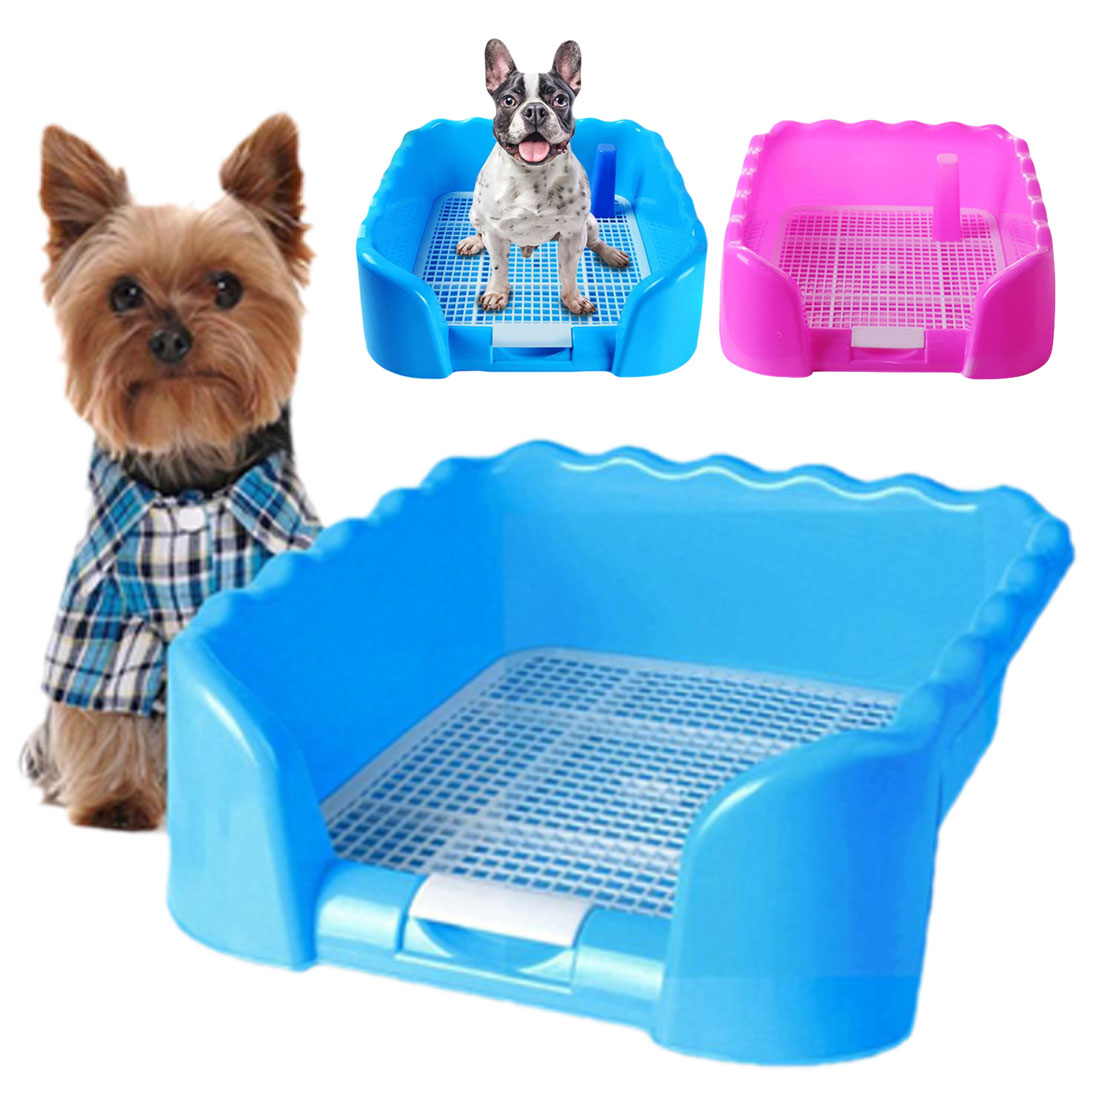 Portable Puppy Training Tray with Fence for Pet Dogs and Cats Potty and Pee Training Indoor 7